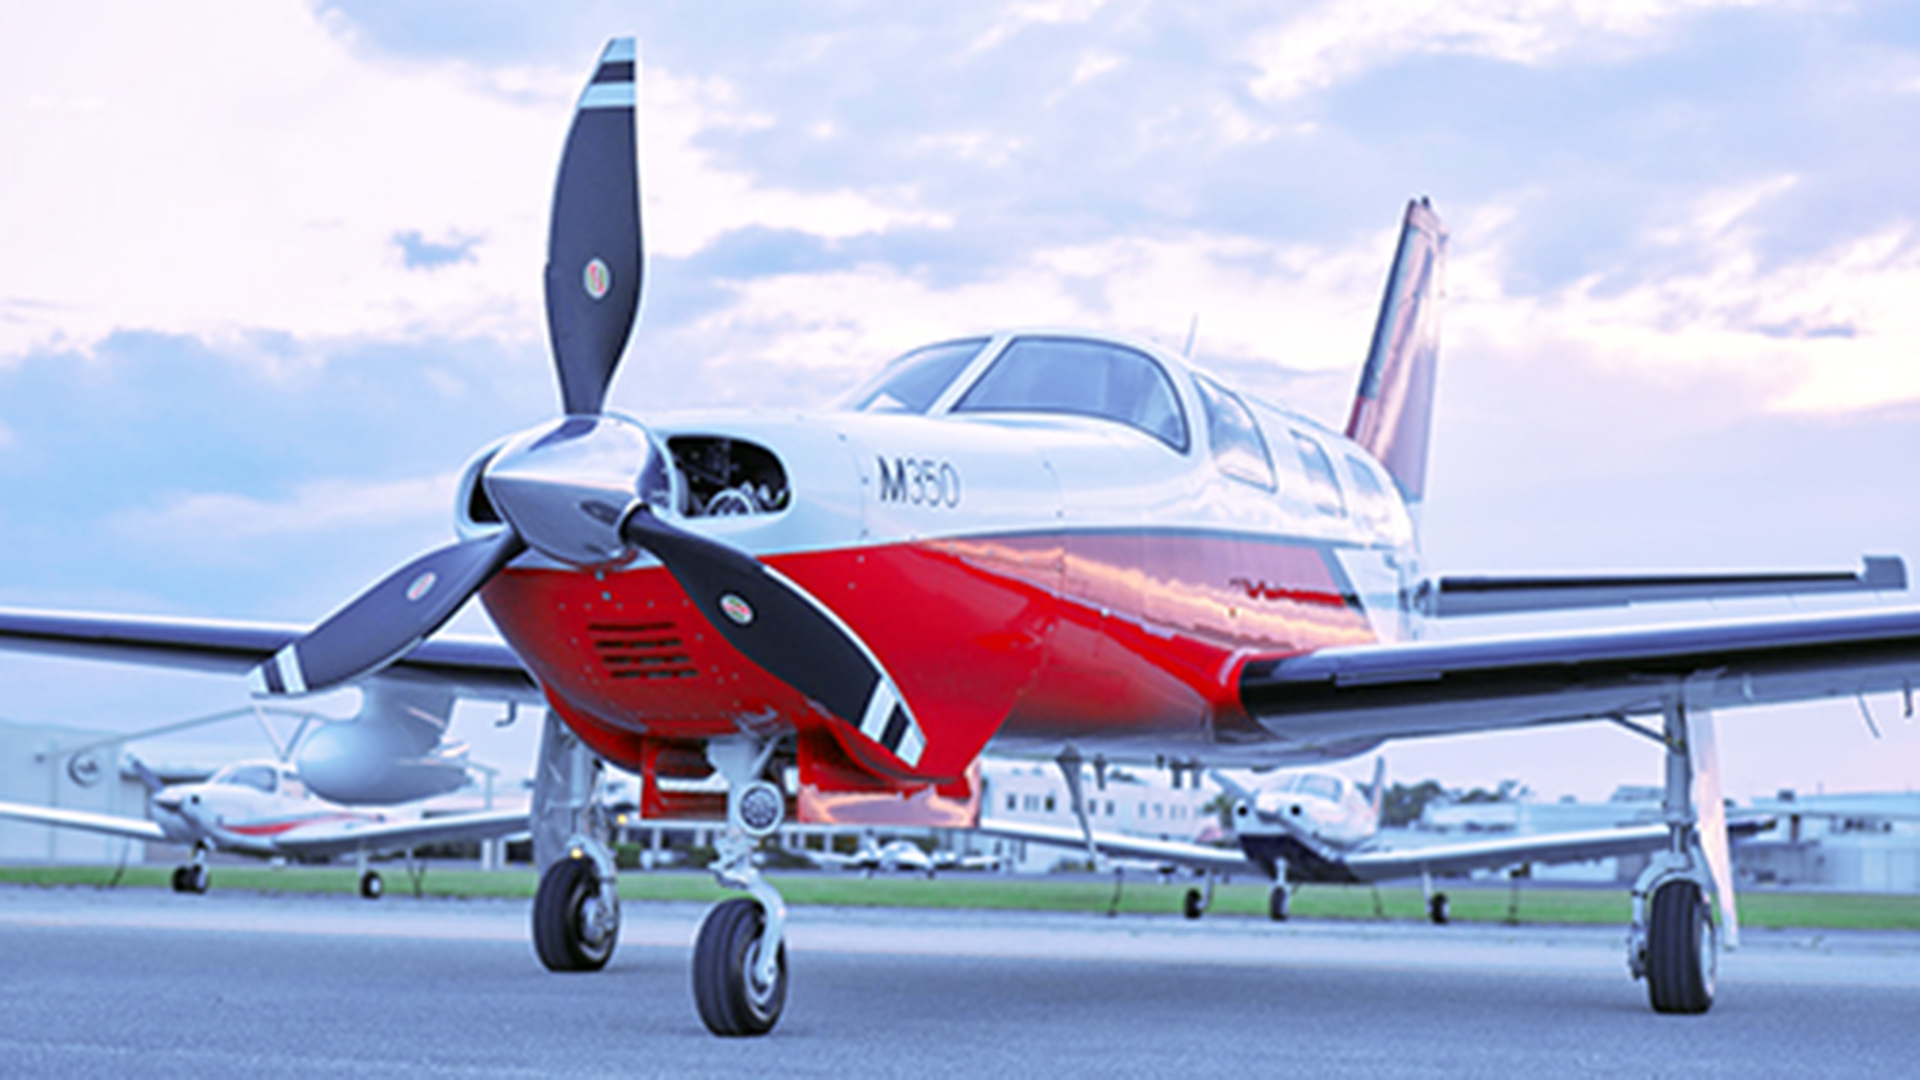 IRSC and Piper Aircraft have launched a new apprenticeship program